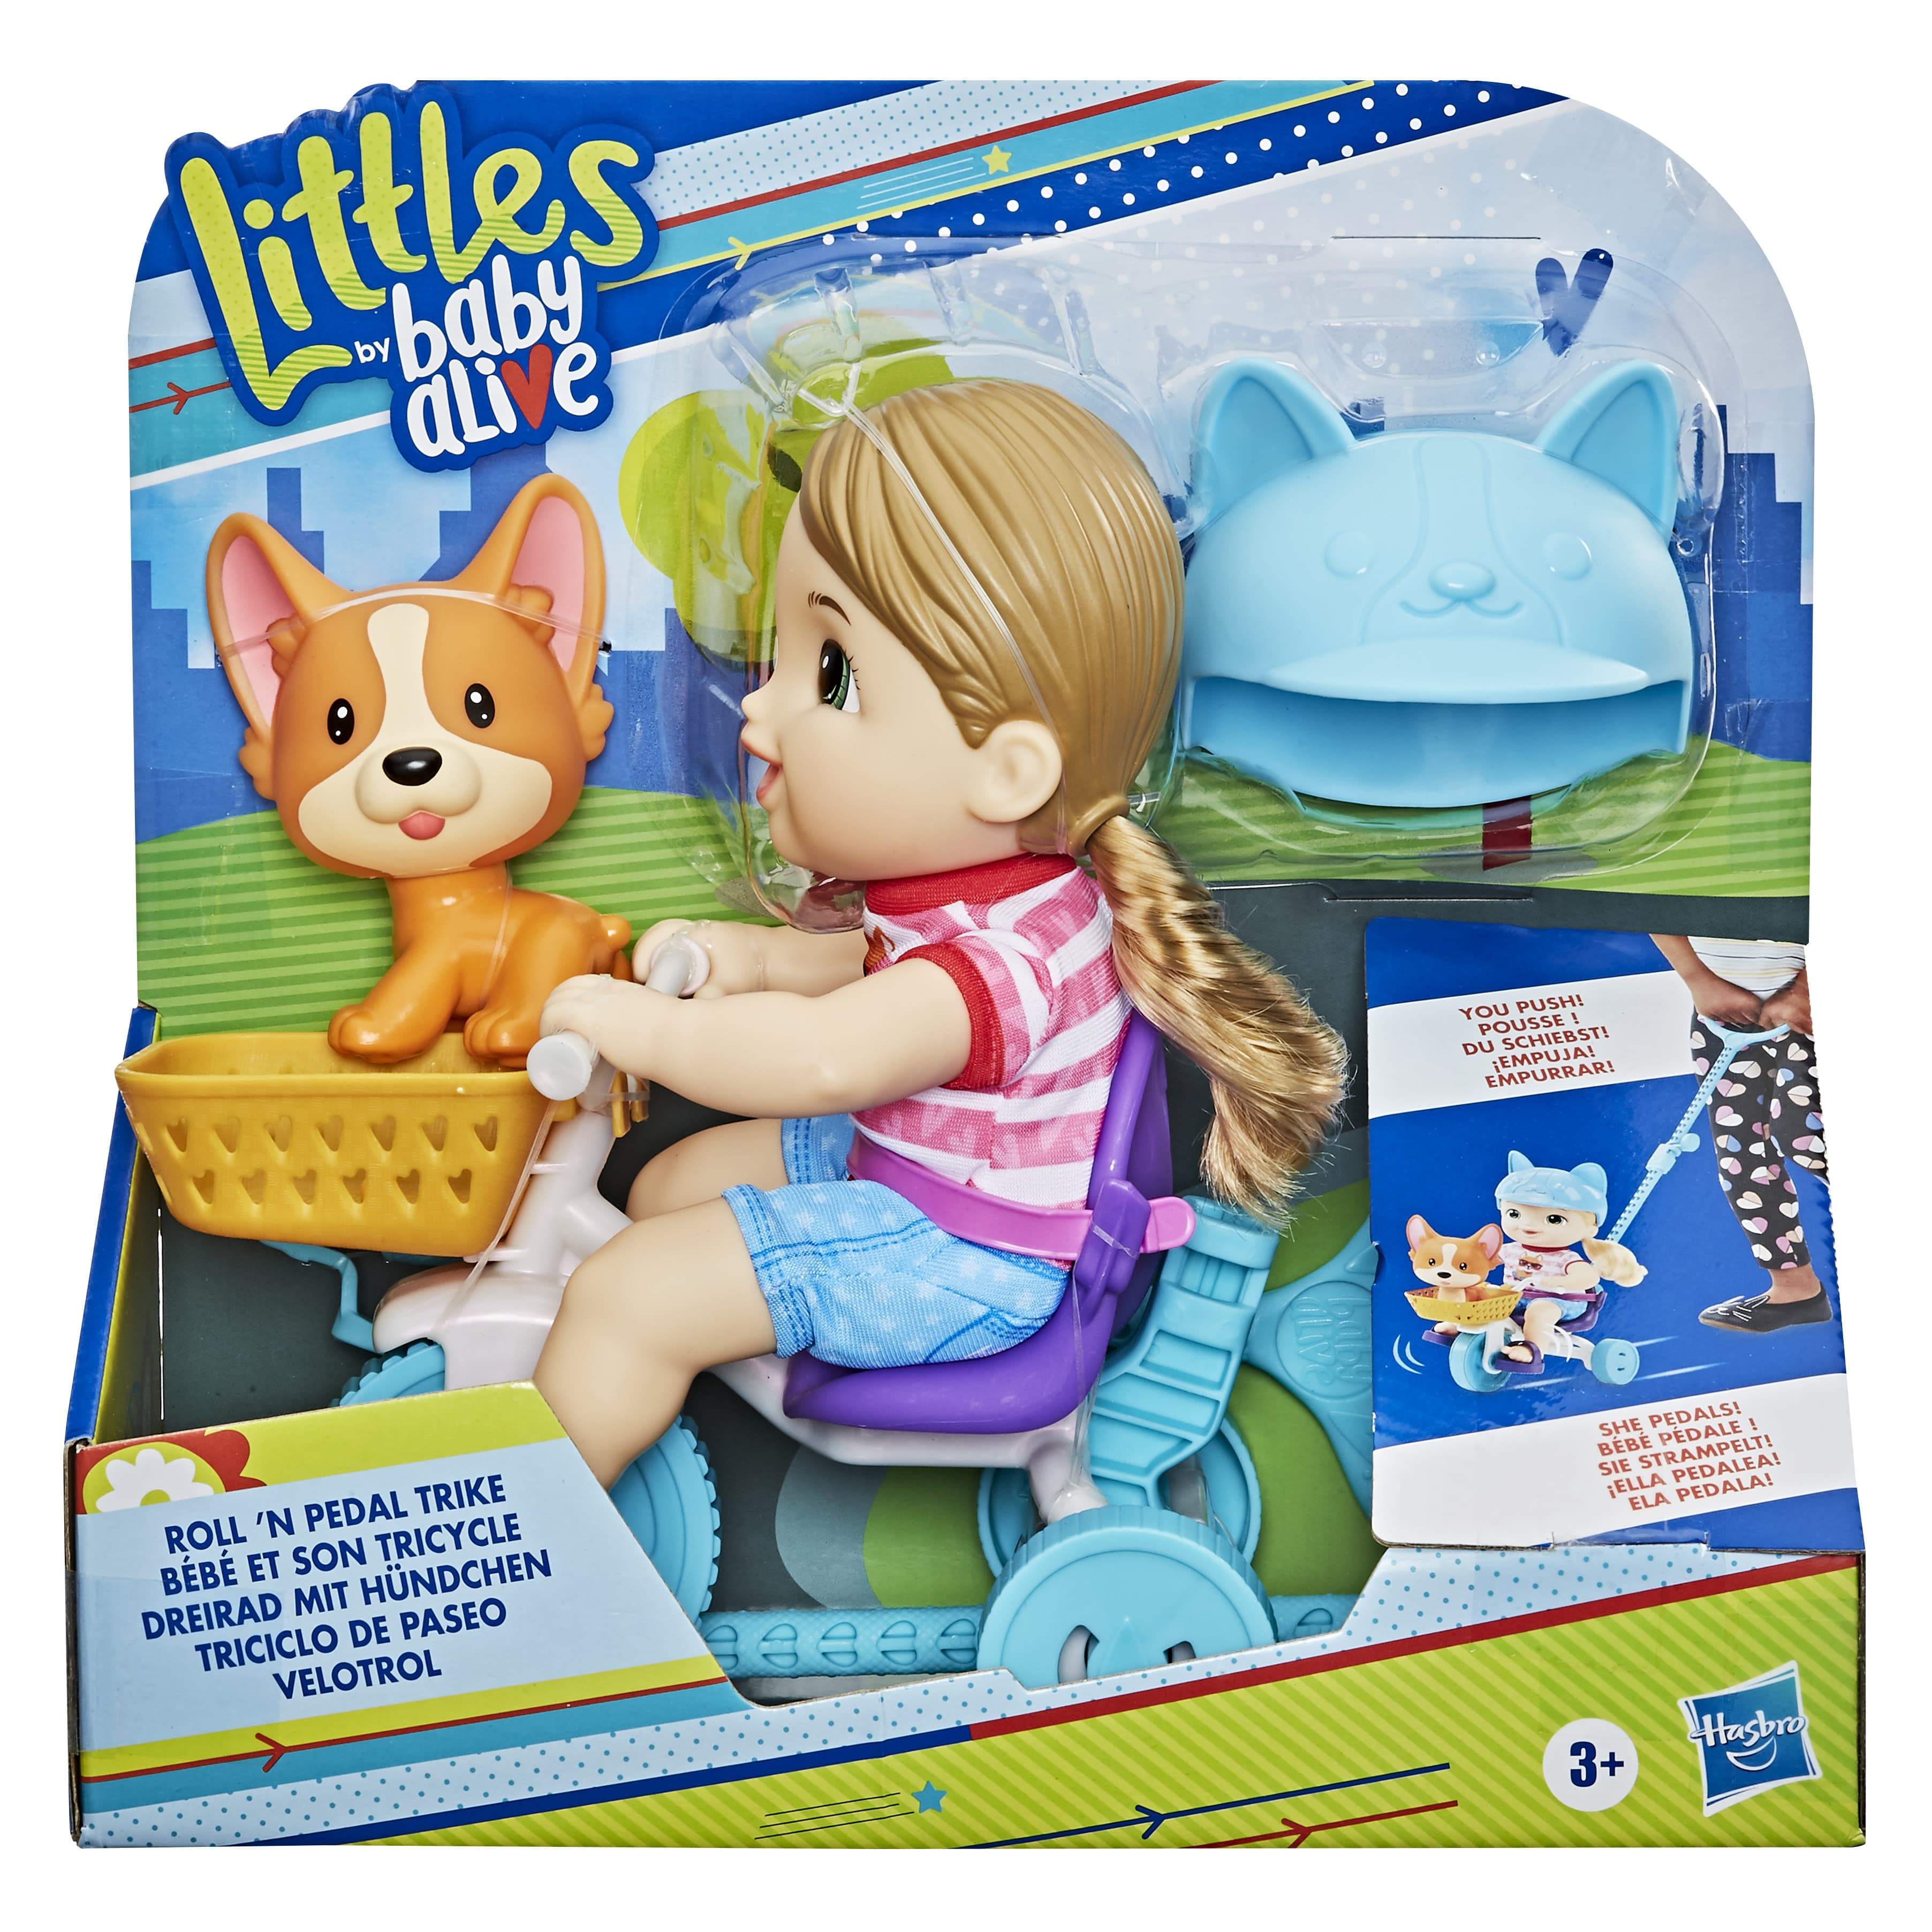 E7410 BABY ALIVE LITTLES TRIKE In Pack